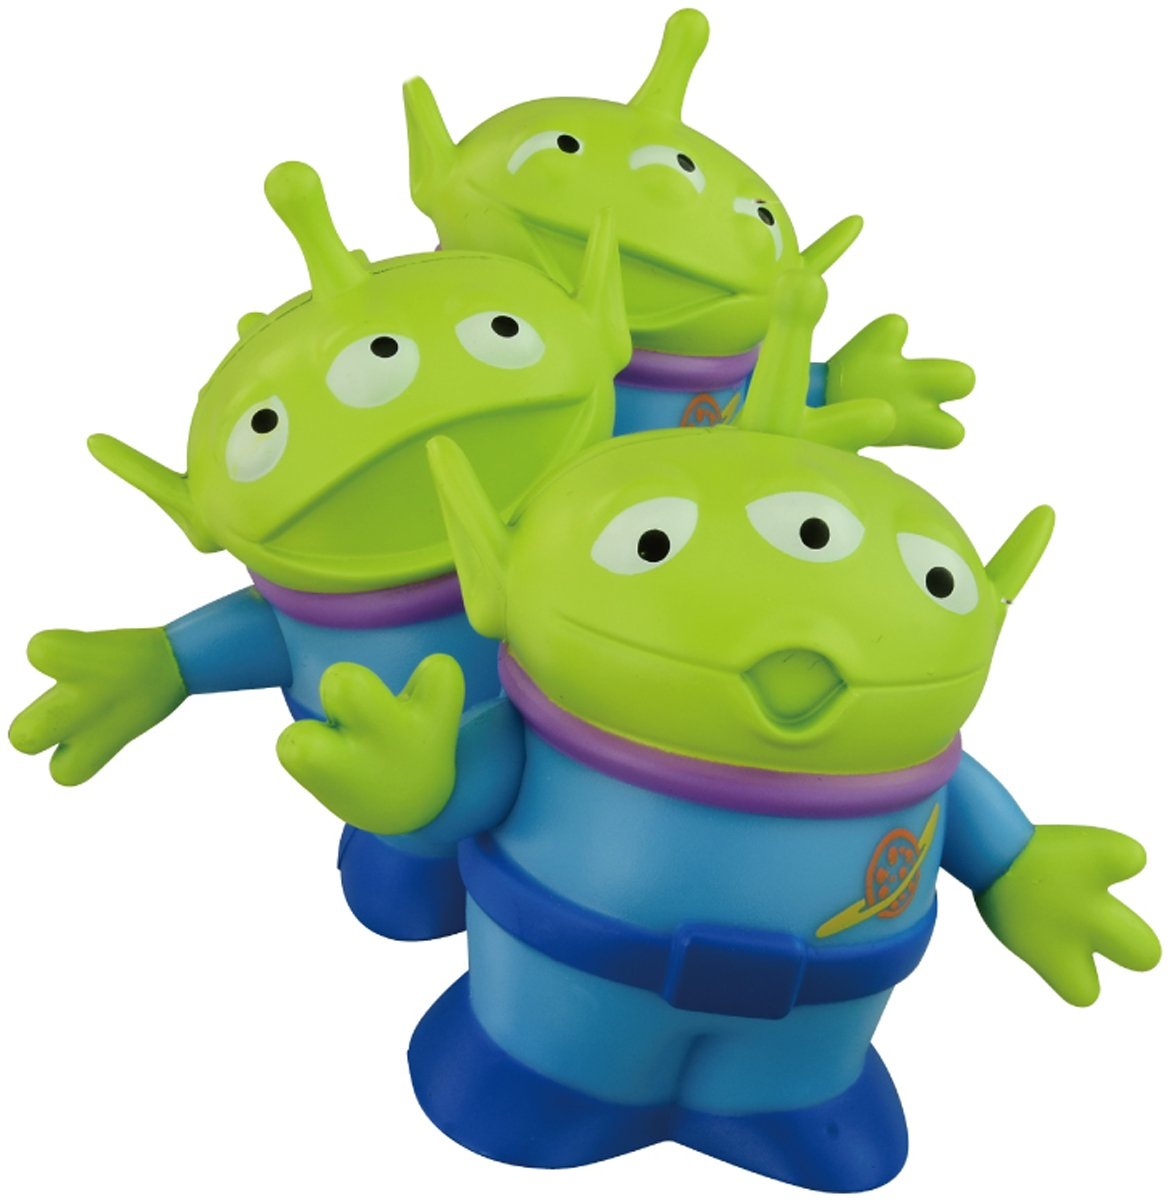 Amazon.com: Disney Toy Story - Walking Aliens by Takara Tomy: Toys ...